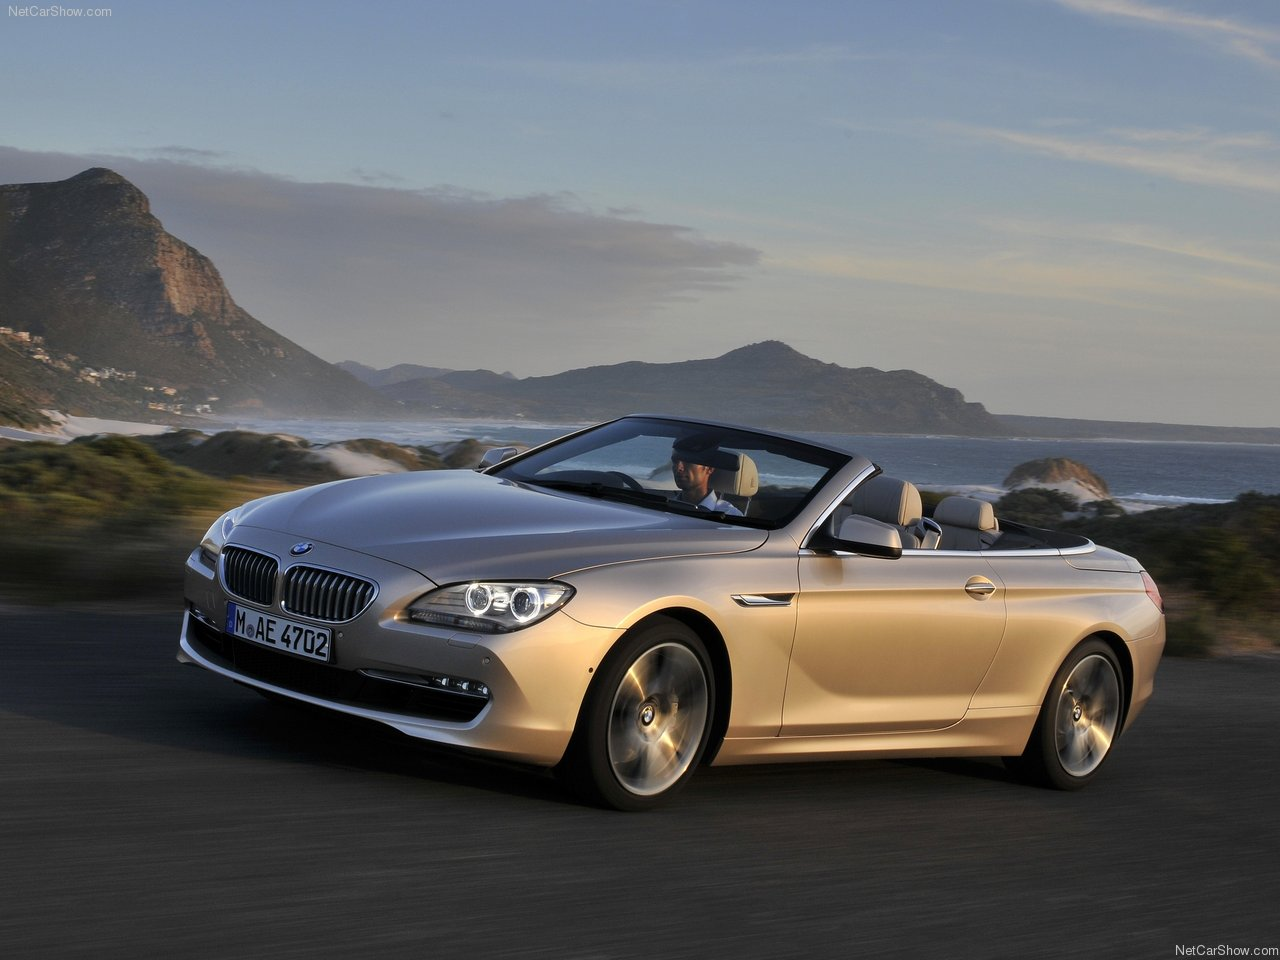 2012 bmw 6 series convertible bmw autos spain. Black Bedroom Furniture Sets. Home Design Ideas